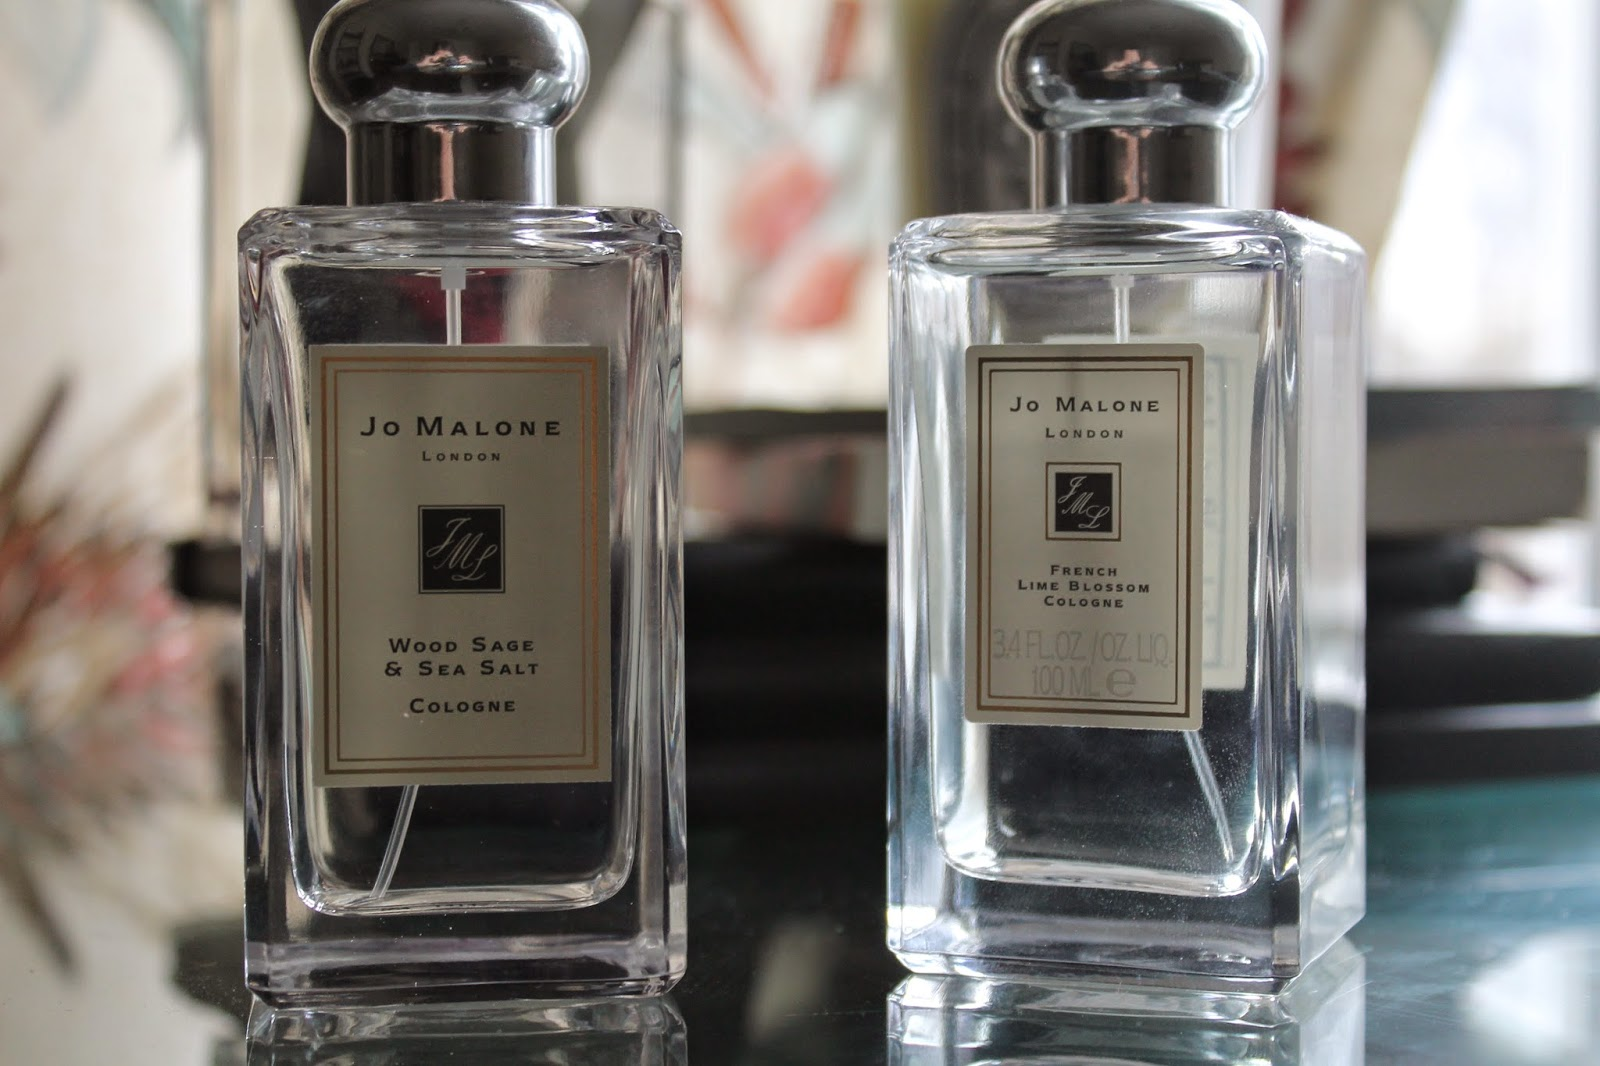 AN ODE TO JO MALONE FRAGRANCES